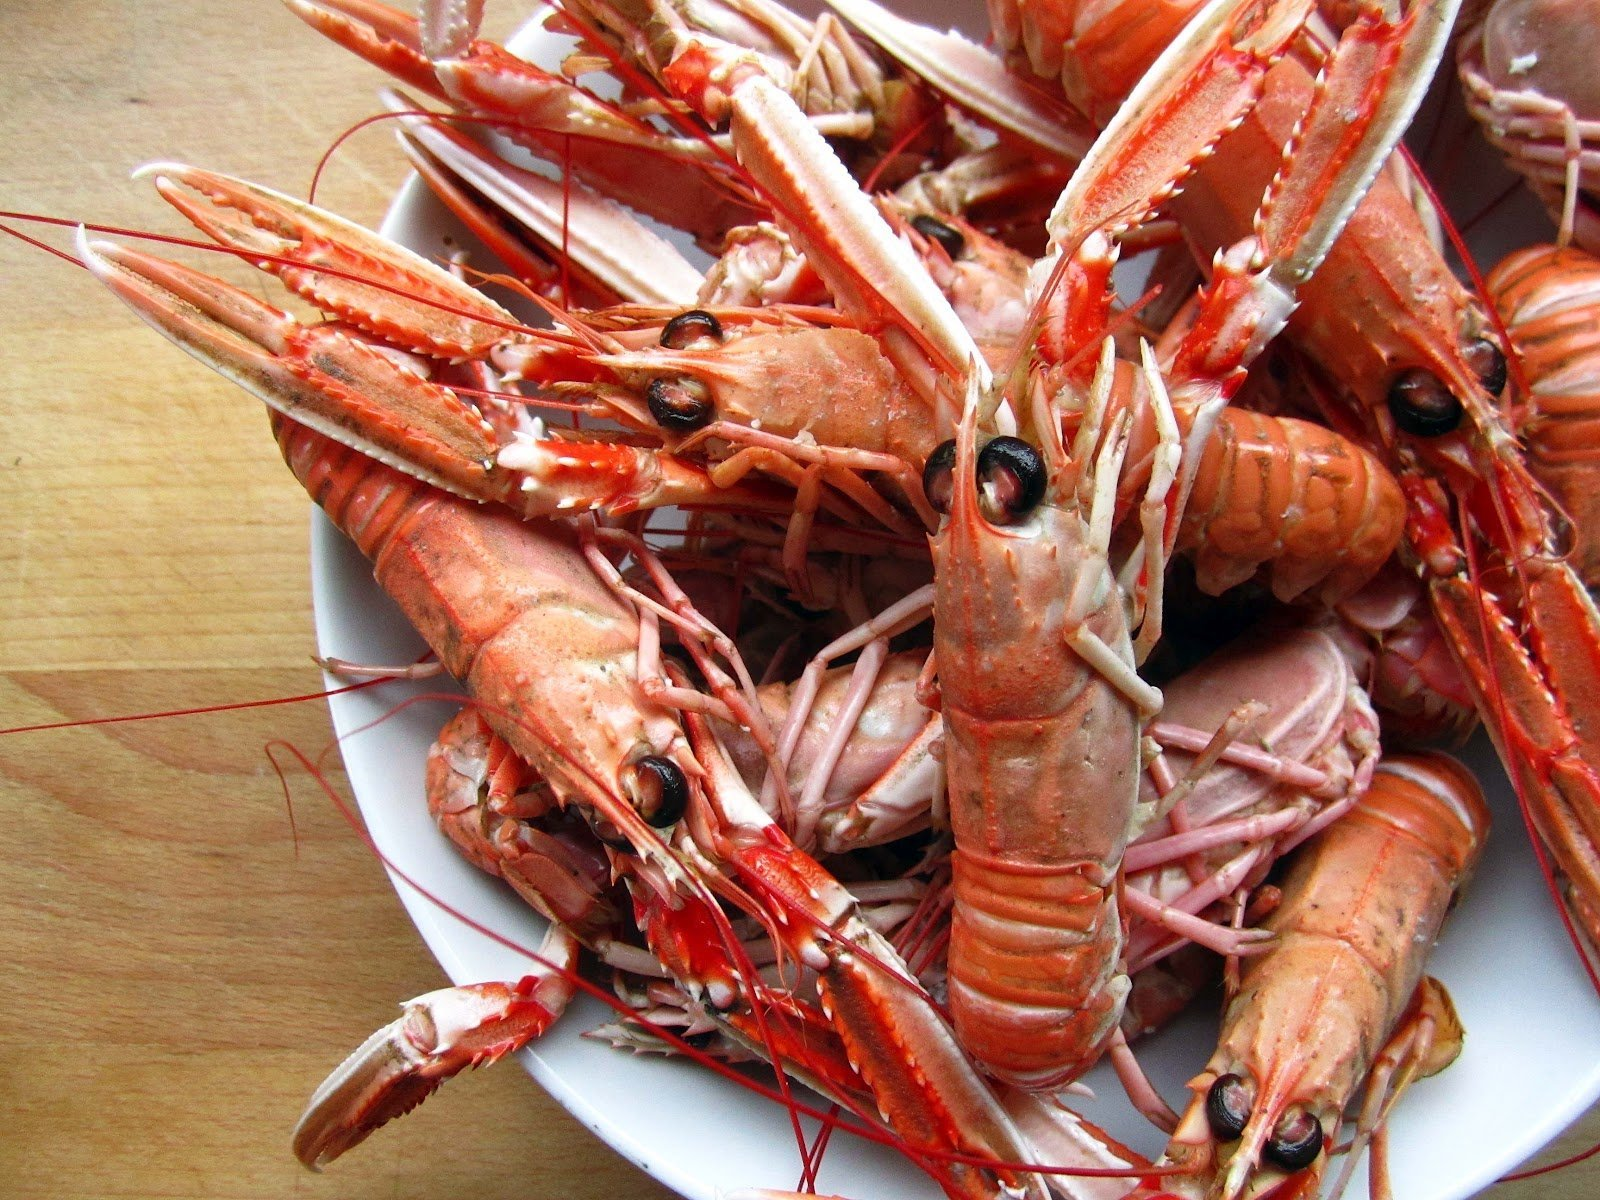 reviews of Giant Crab Seafood Restaurant